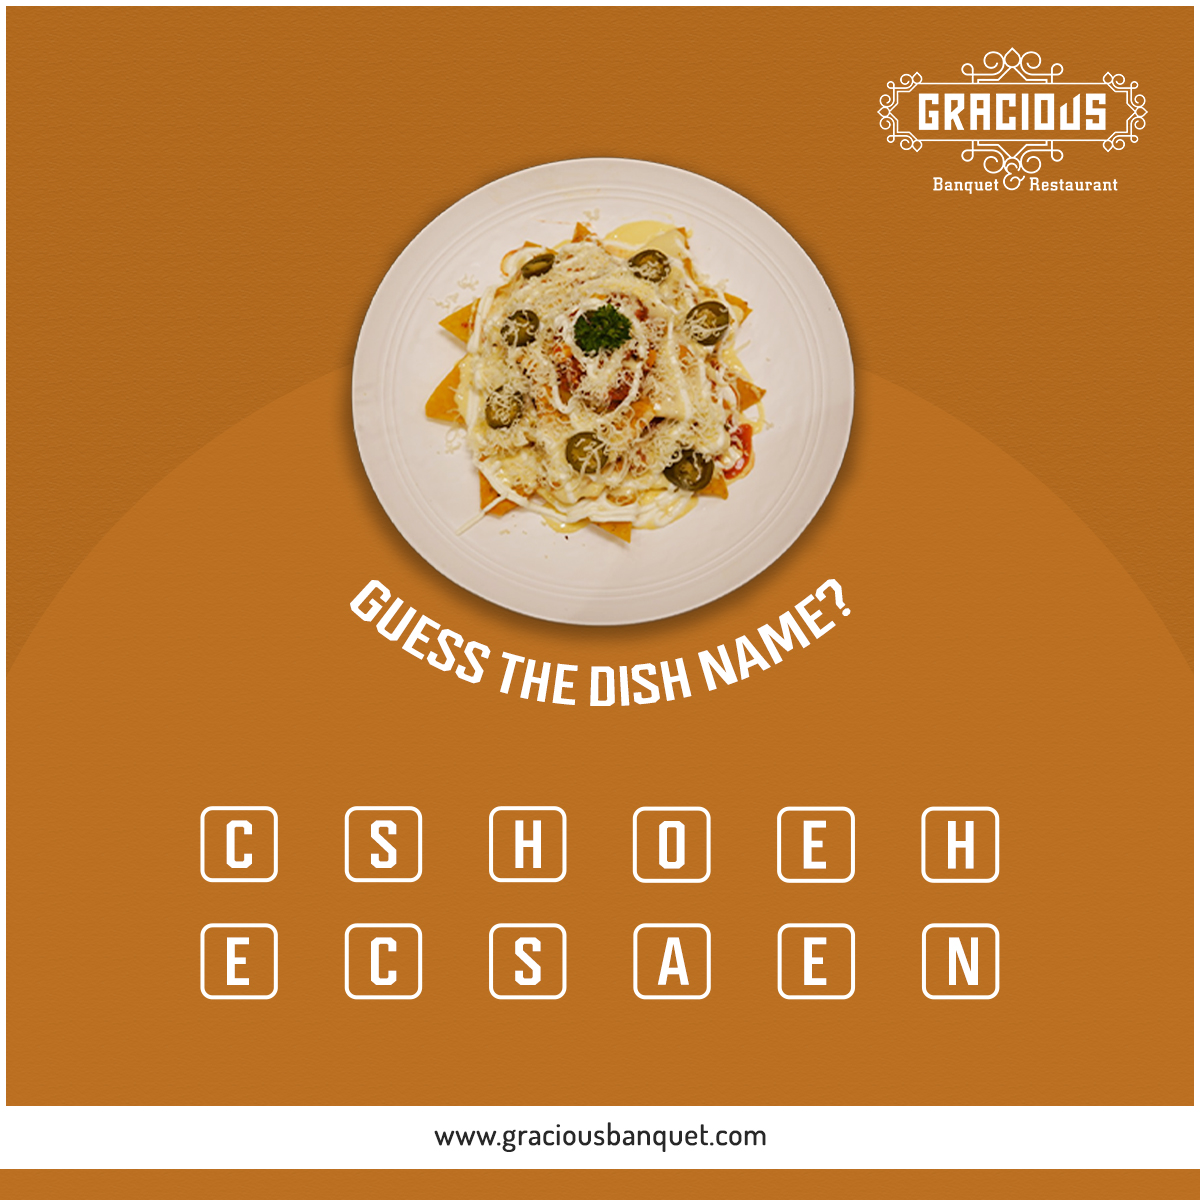 Guess the Dish Name?  #Gracious #Banquet #Restaurant #Ahmedabad #food #events #meeting #appetizer #mocktail #punjabi #chinese #mexican #thai #italian #continental #seminarhalls #ringceremony #reception #babyshower #wedding #anniversary #kids #birthday #party #paneer